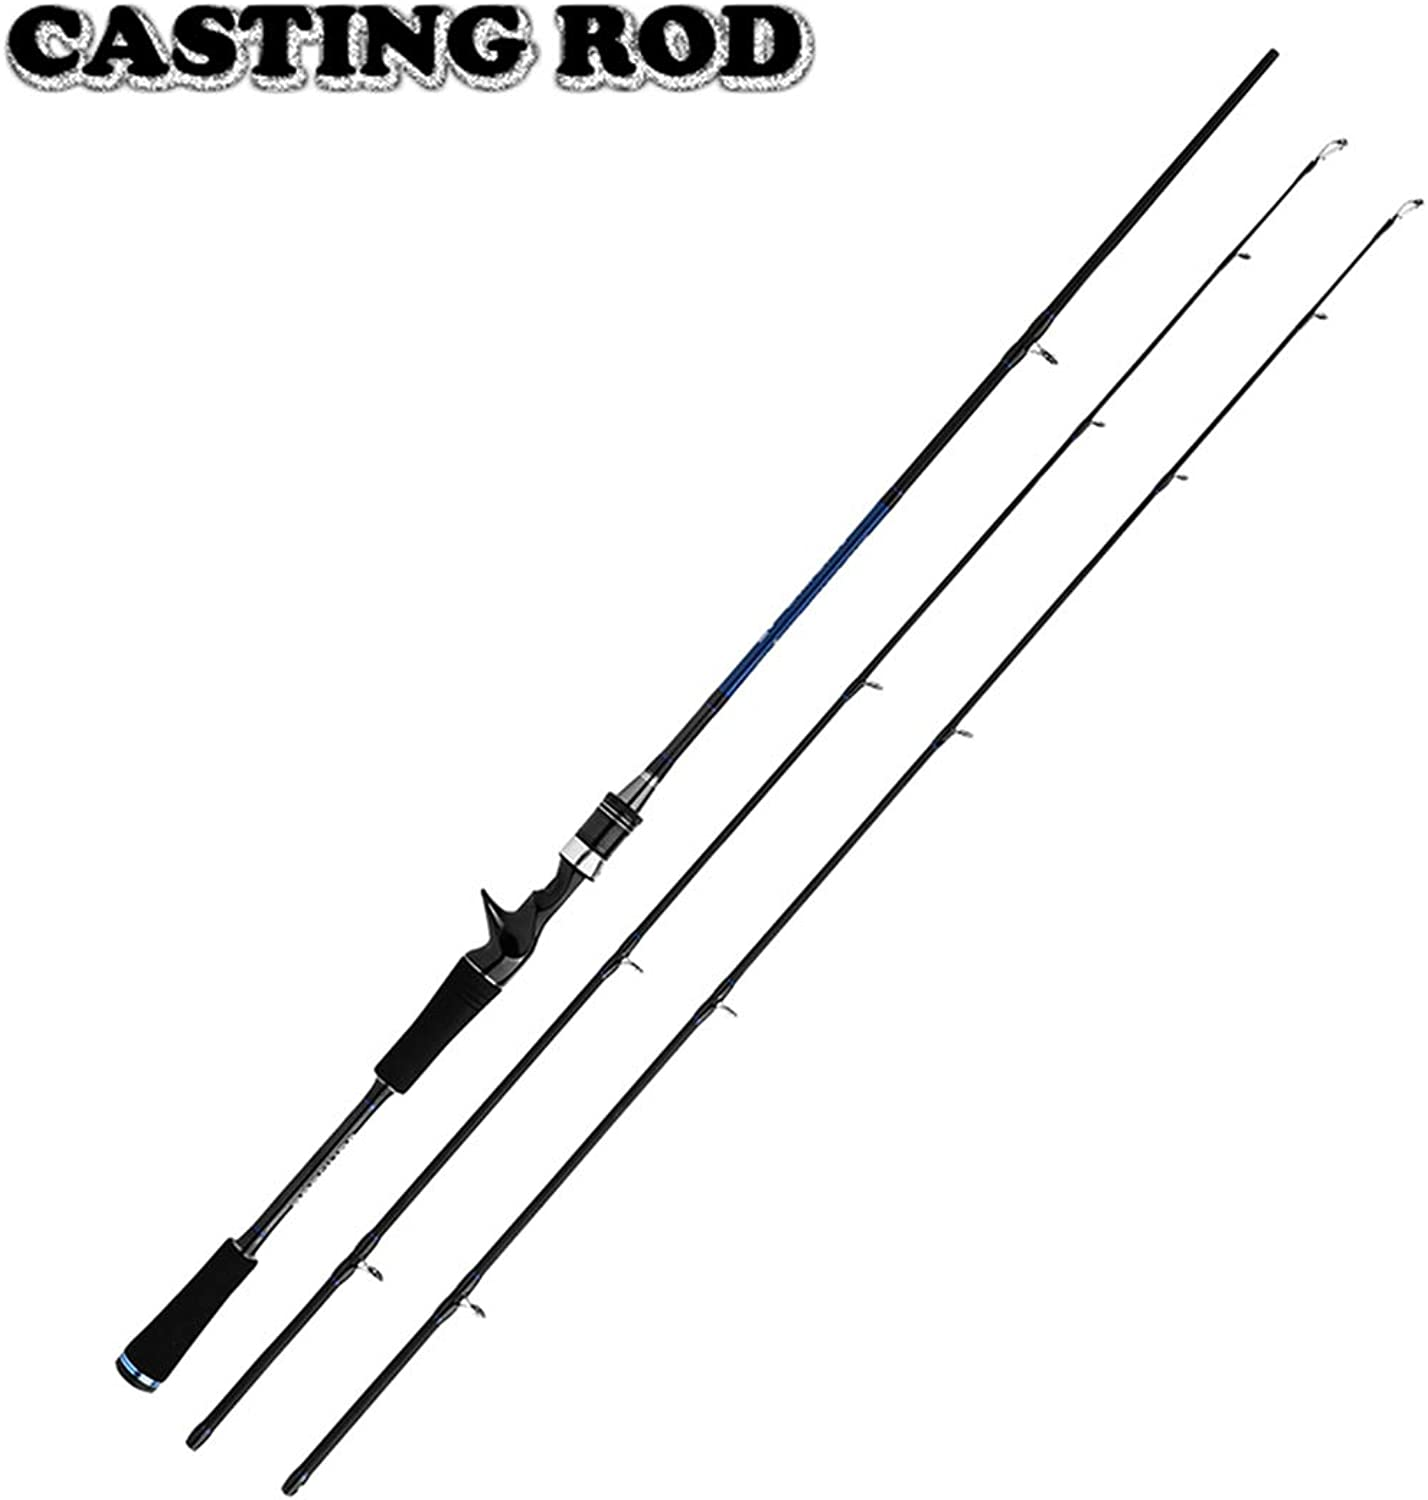 PREtty-2 Lure Fishing Rod 1.8m Carbon Spinning Casting Rod M MH Power Fishing Pole 2 Sections